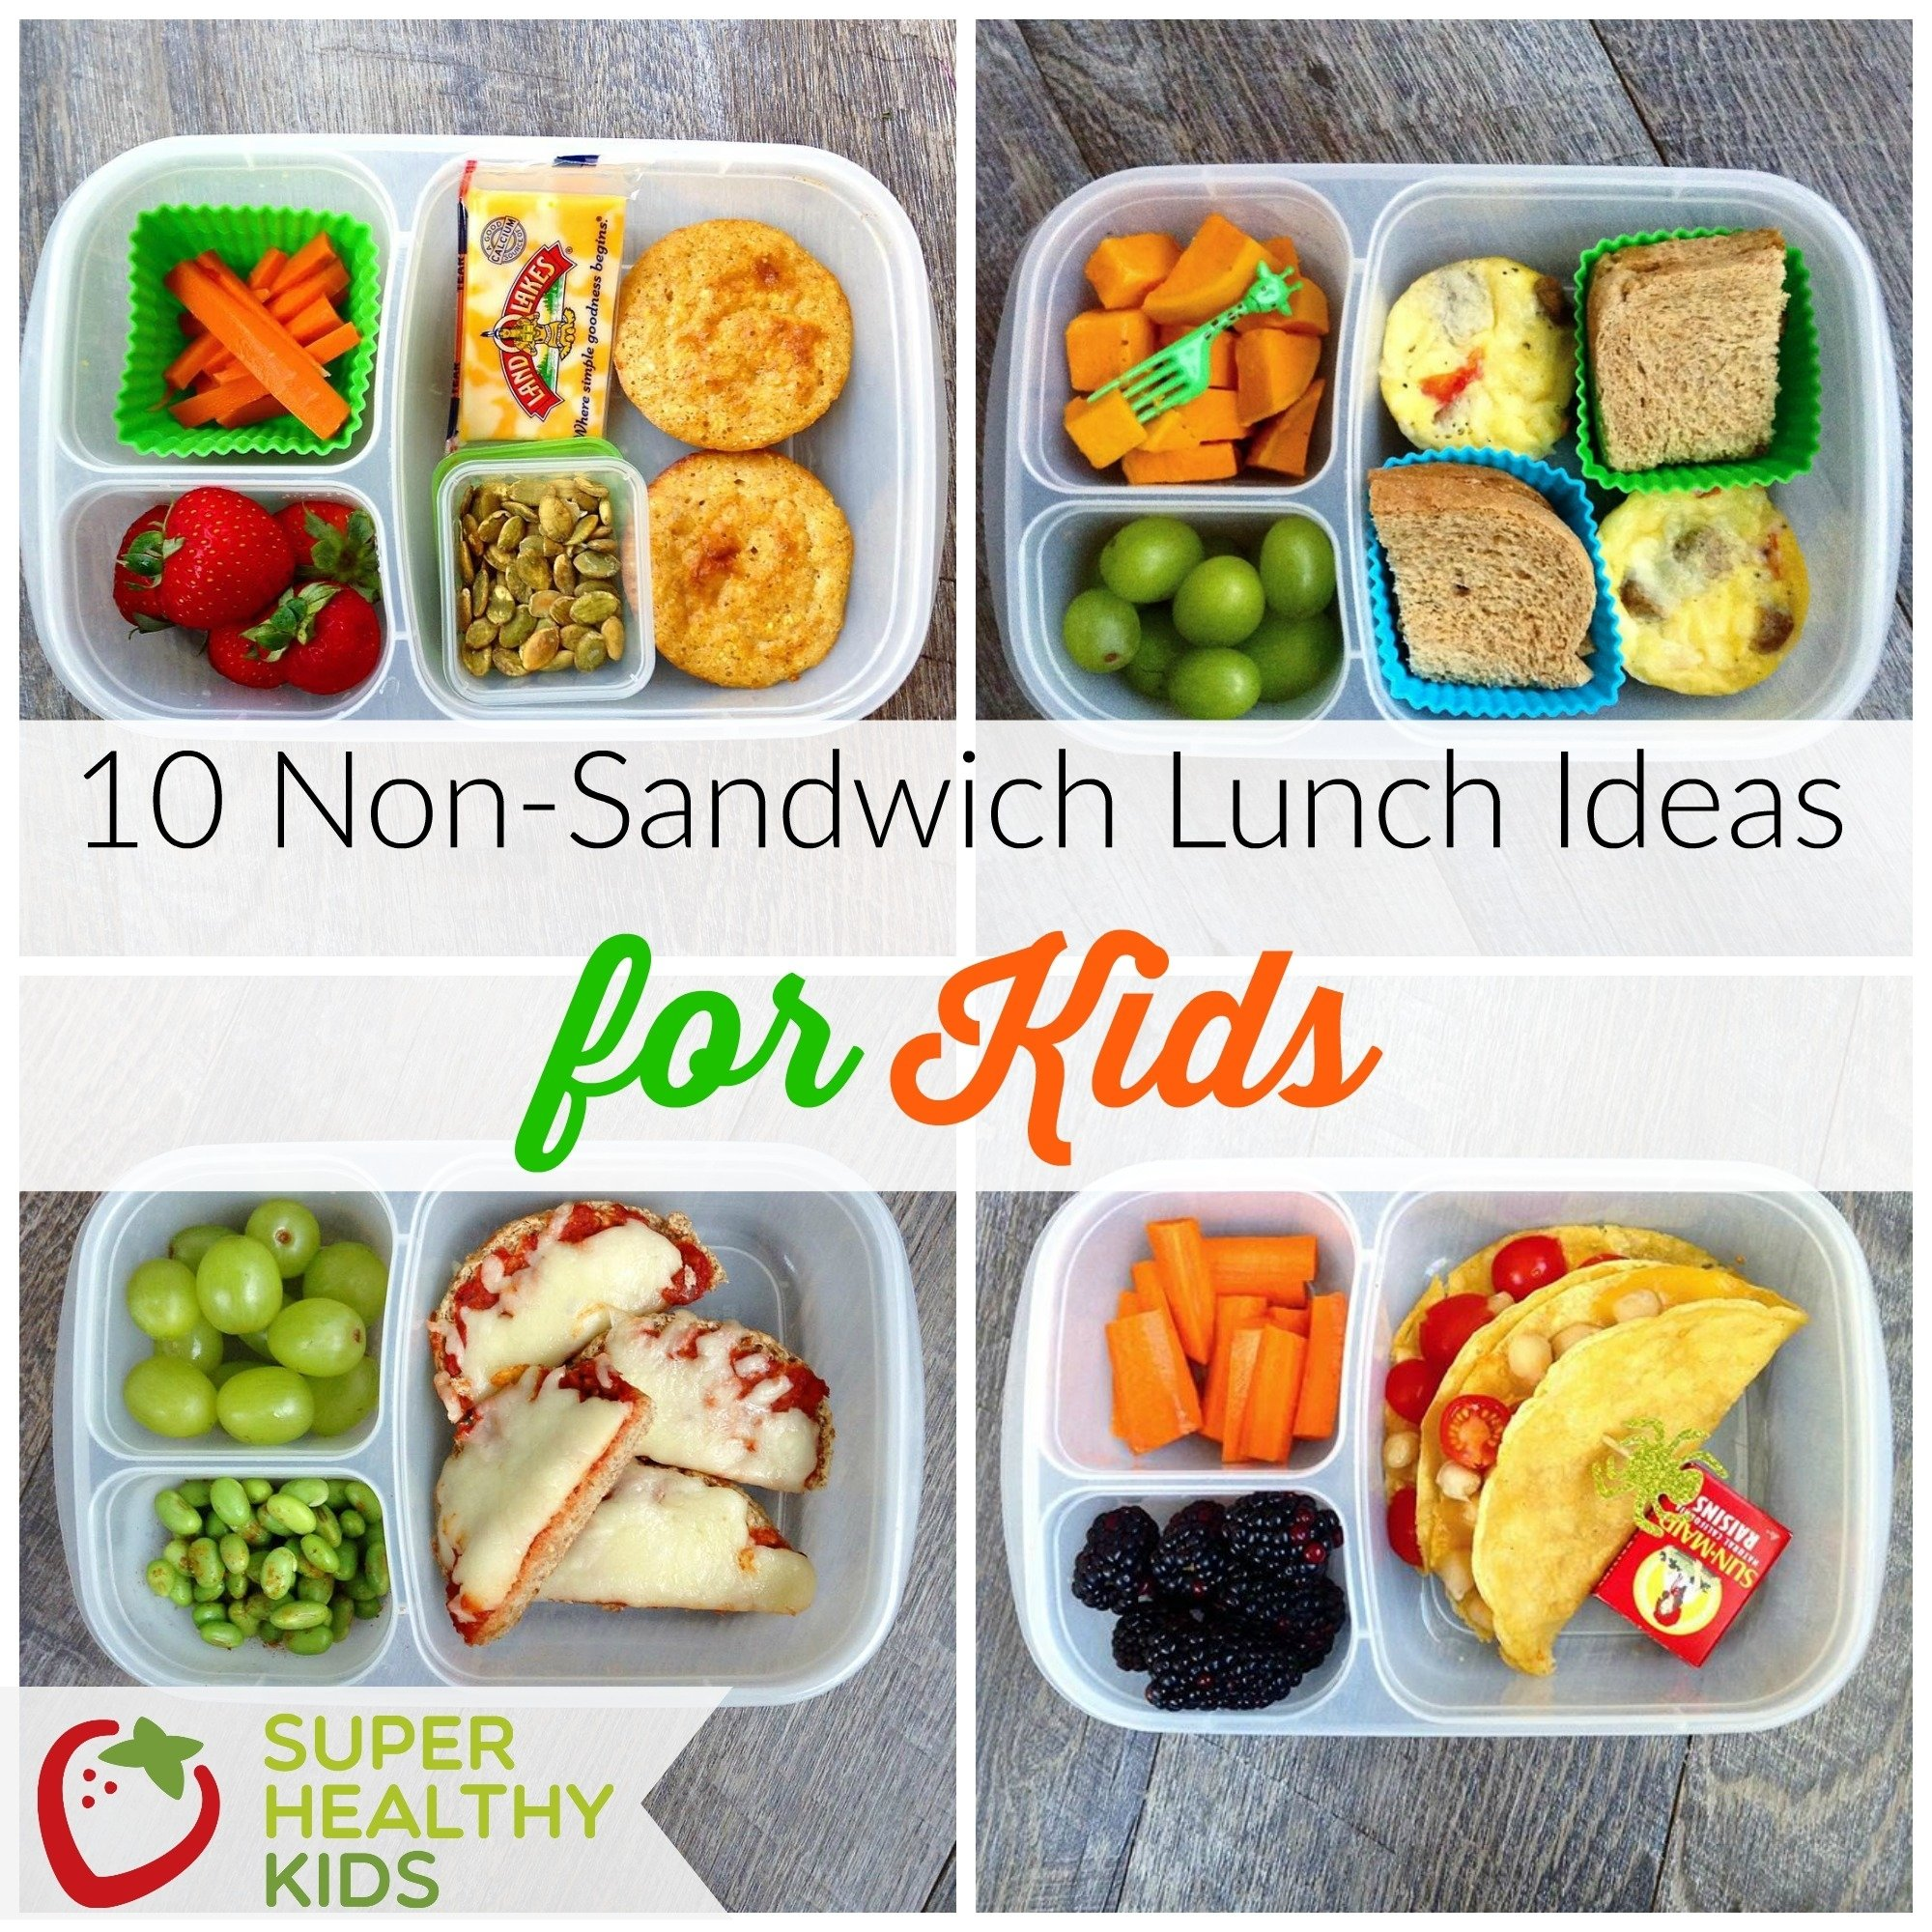 10 Fantastic Healthy Dinner Ideas For Kids 10 non sandwich lunch ideas for kids healthy ideas for kids 6 2020